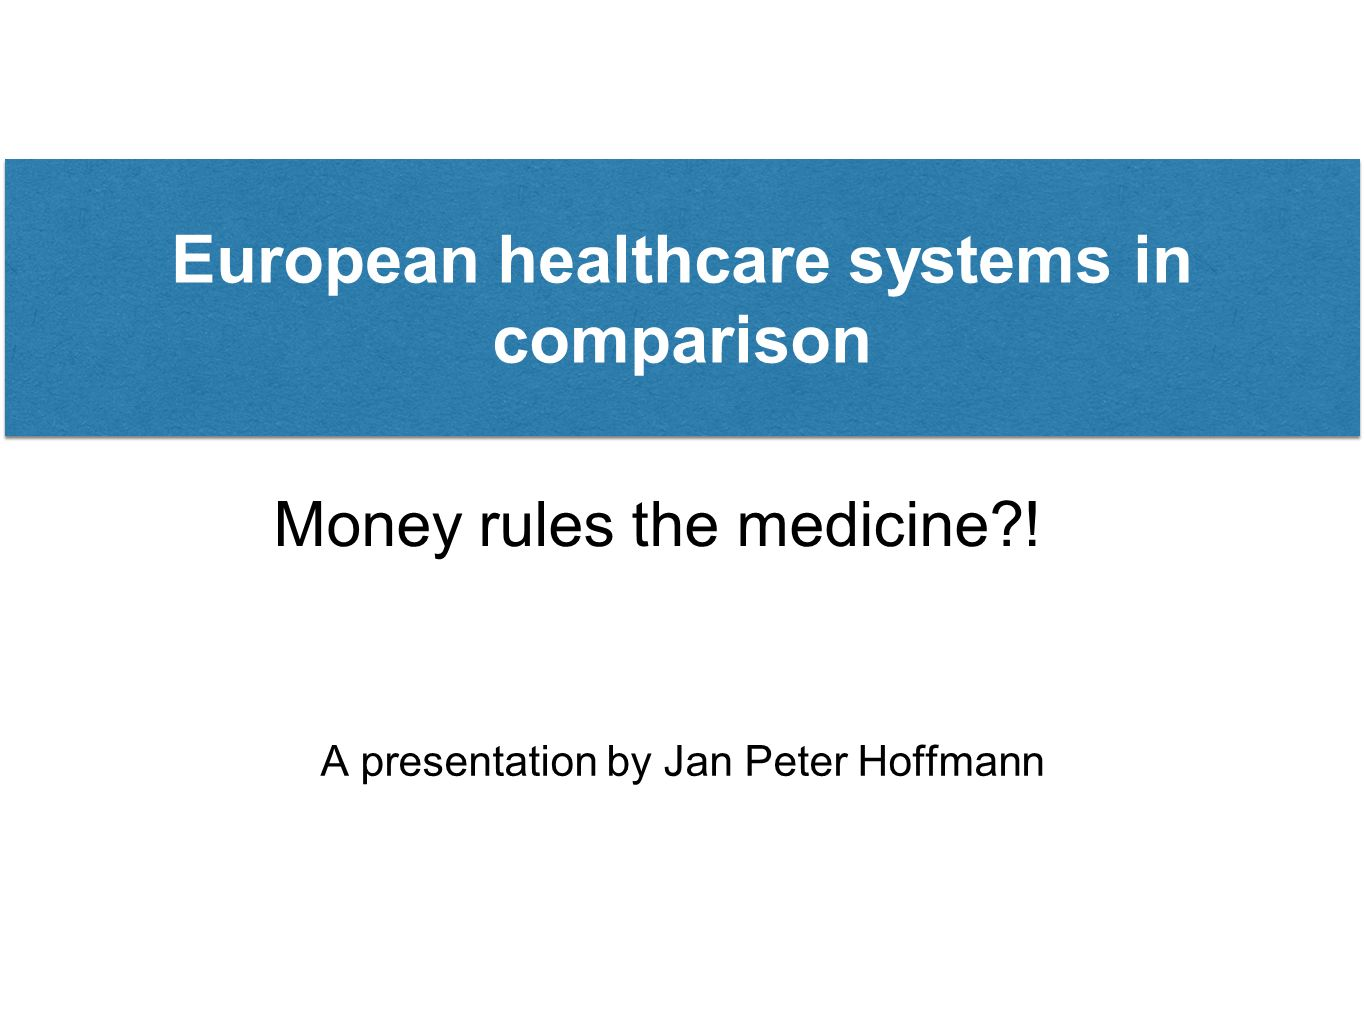 Money rules the medicine?.